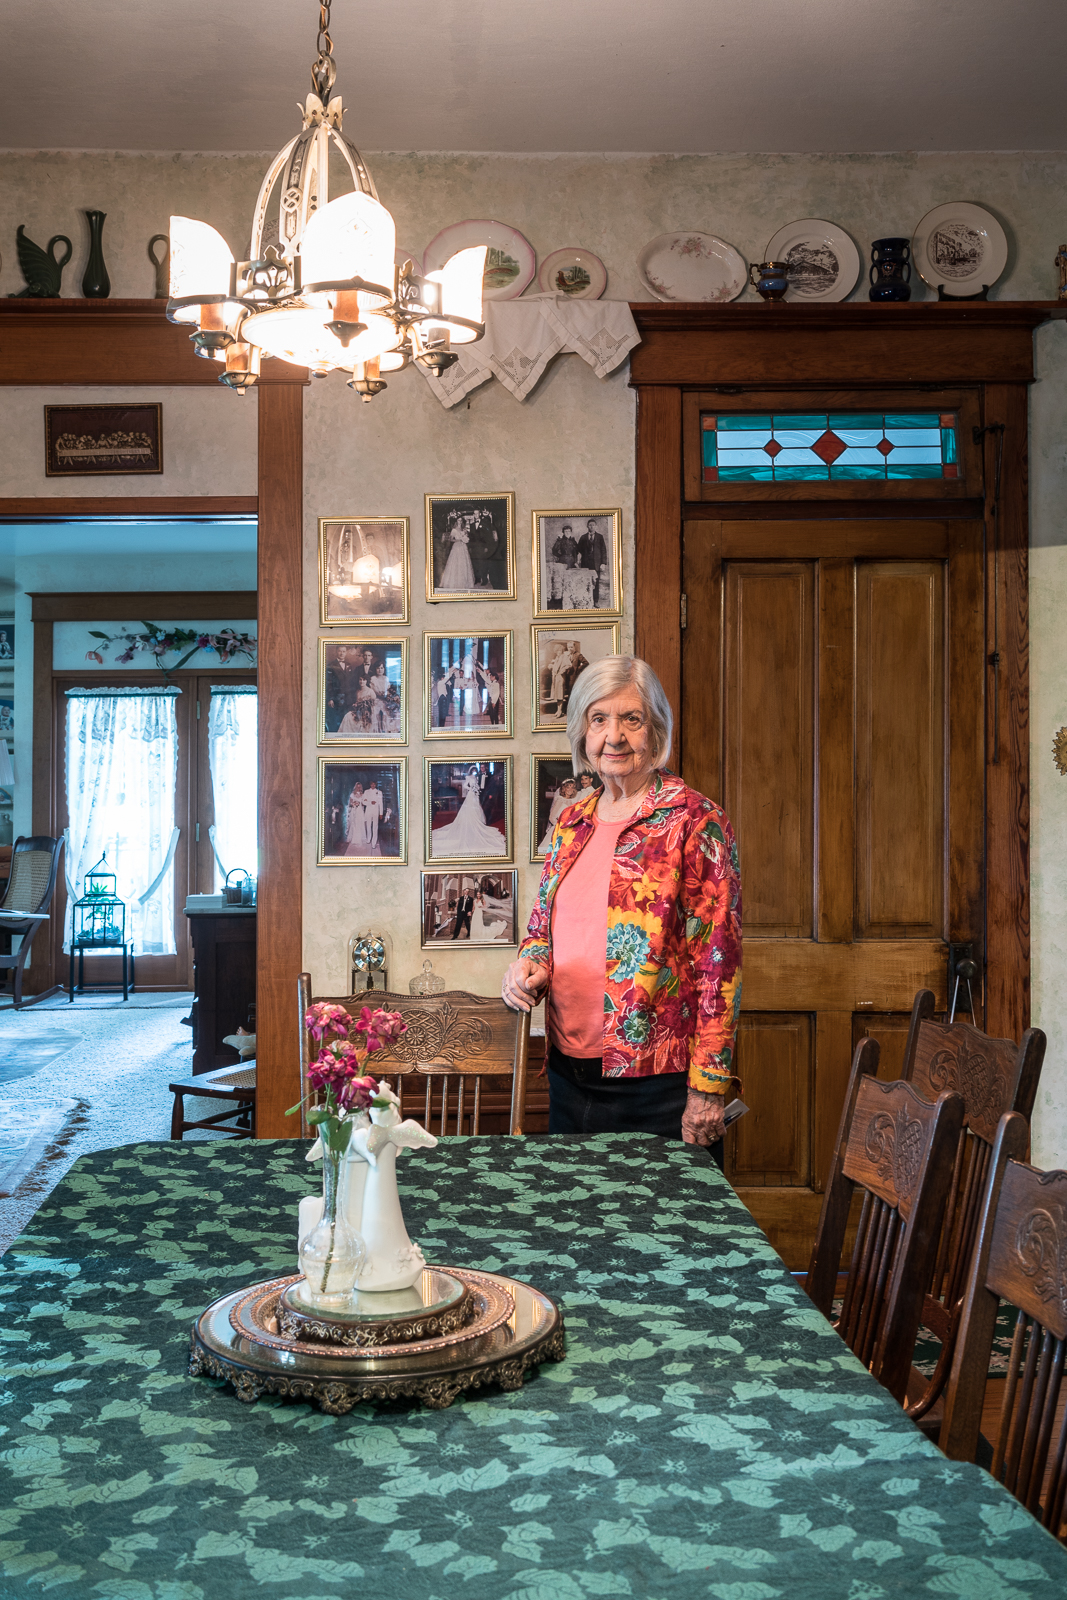 Marilyn at Home, Mascoutah, Illinois, 2017 © Nate Larson